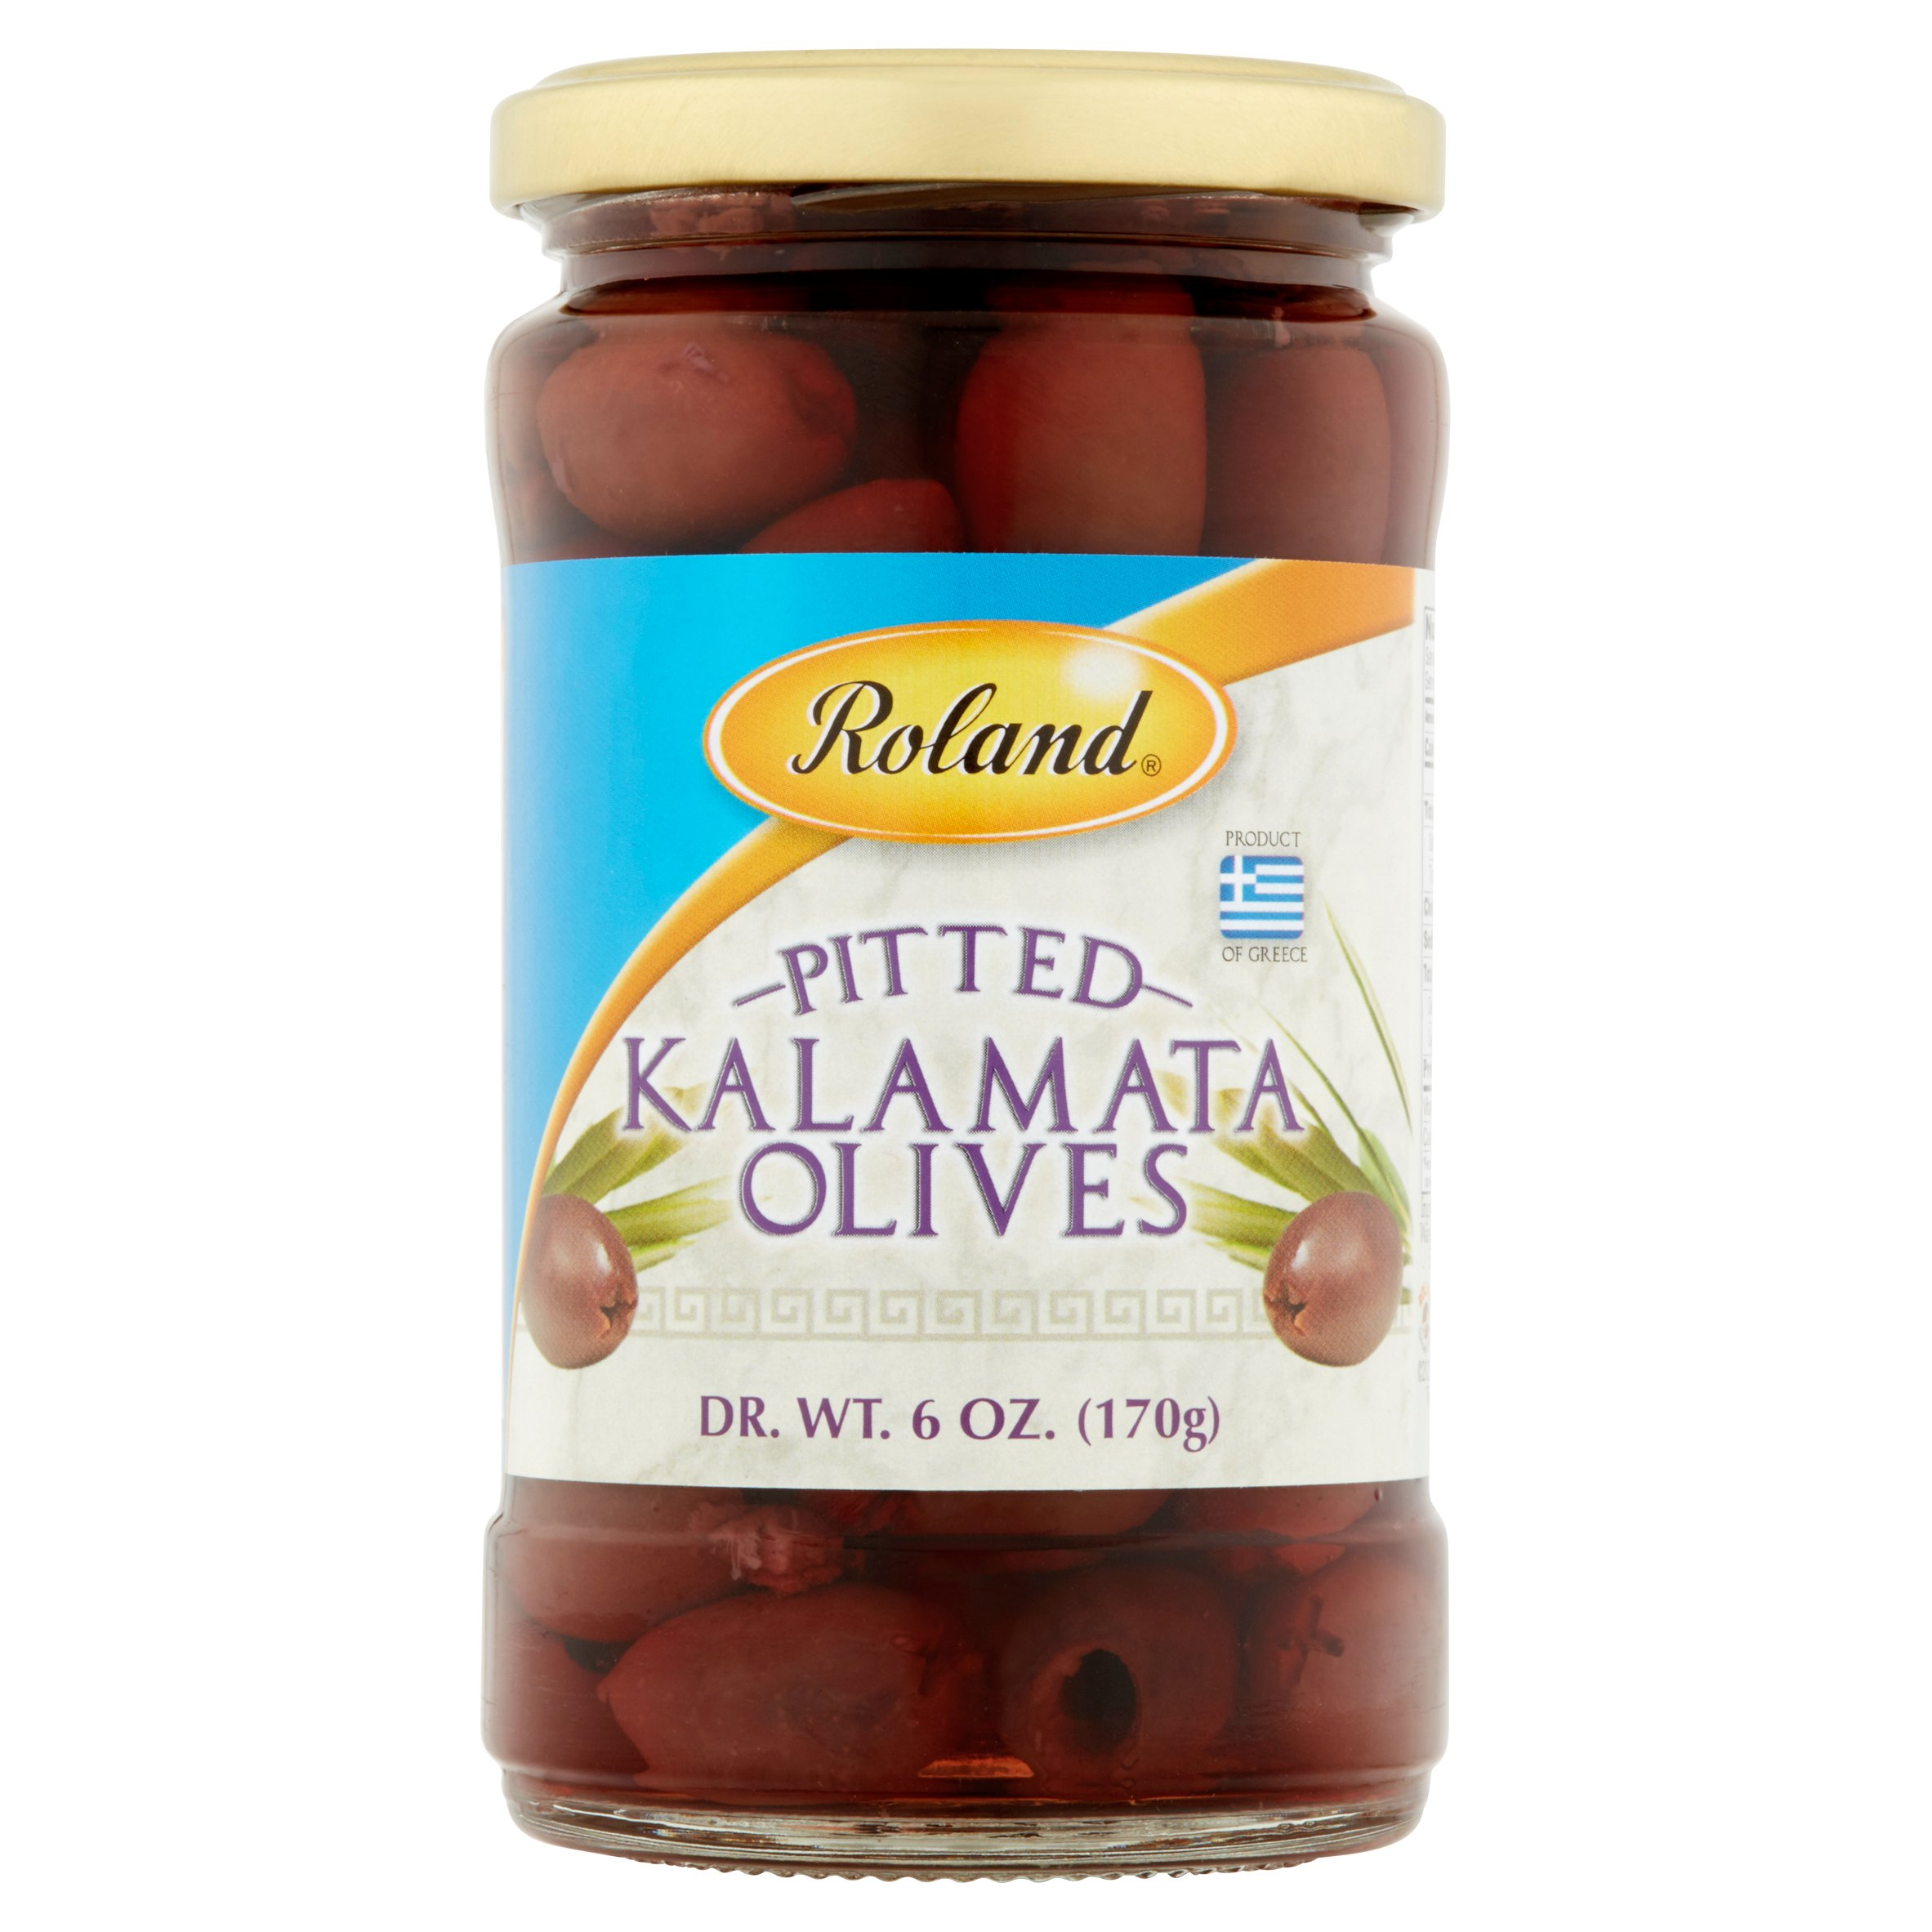 (2 Pack) Roland Pitted Kalamata Olives, 6 Oz